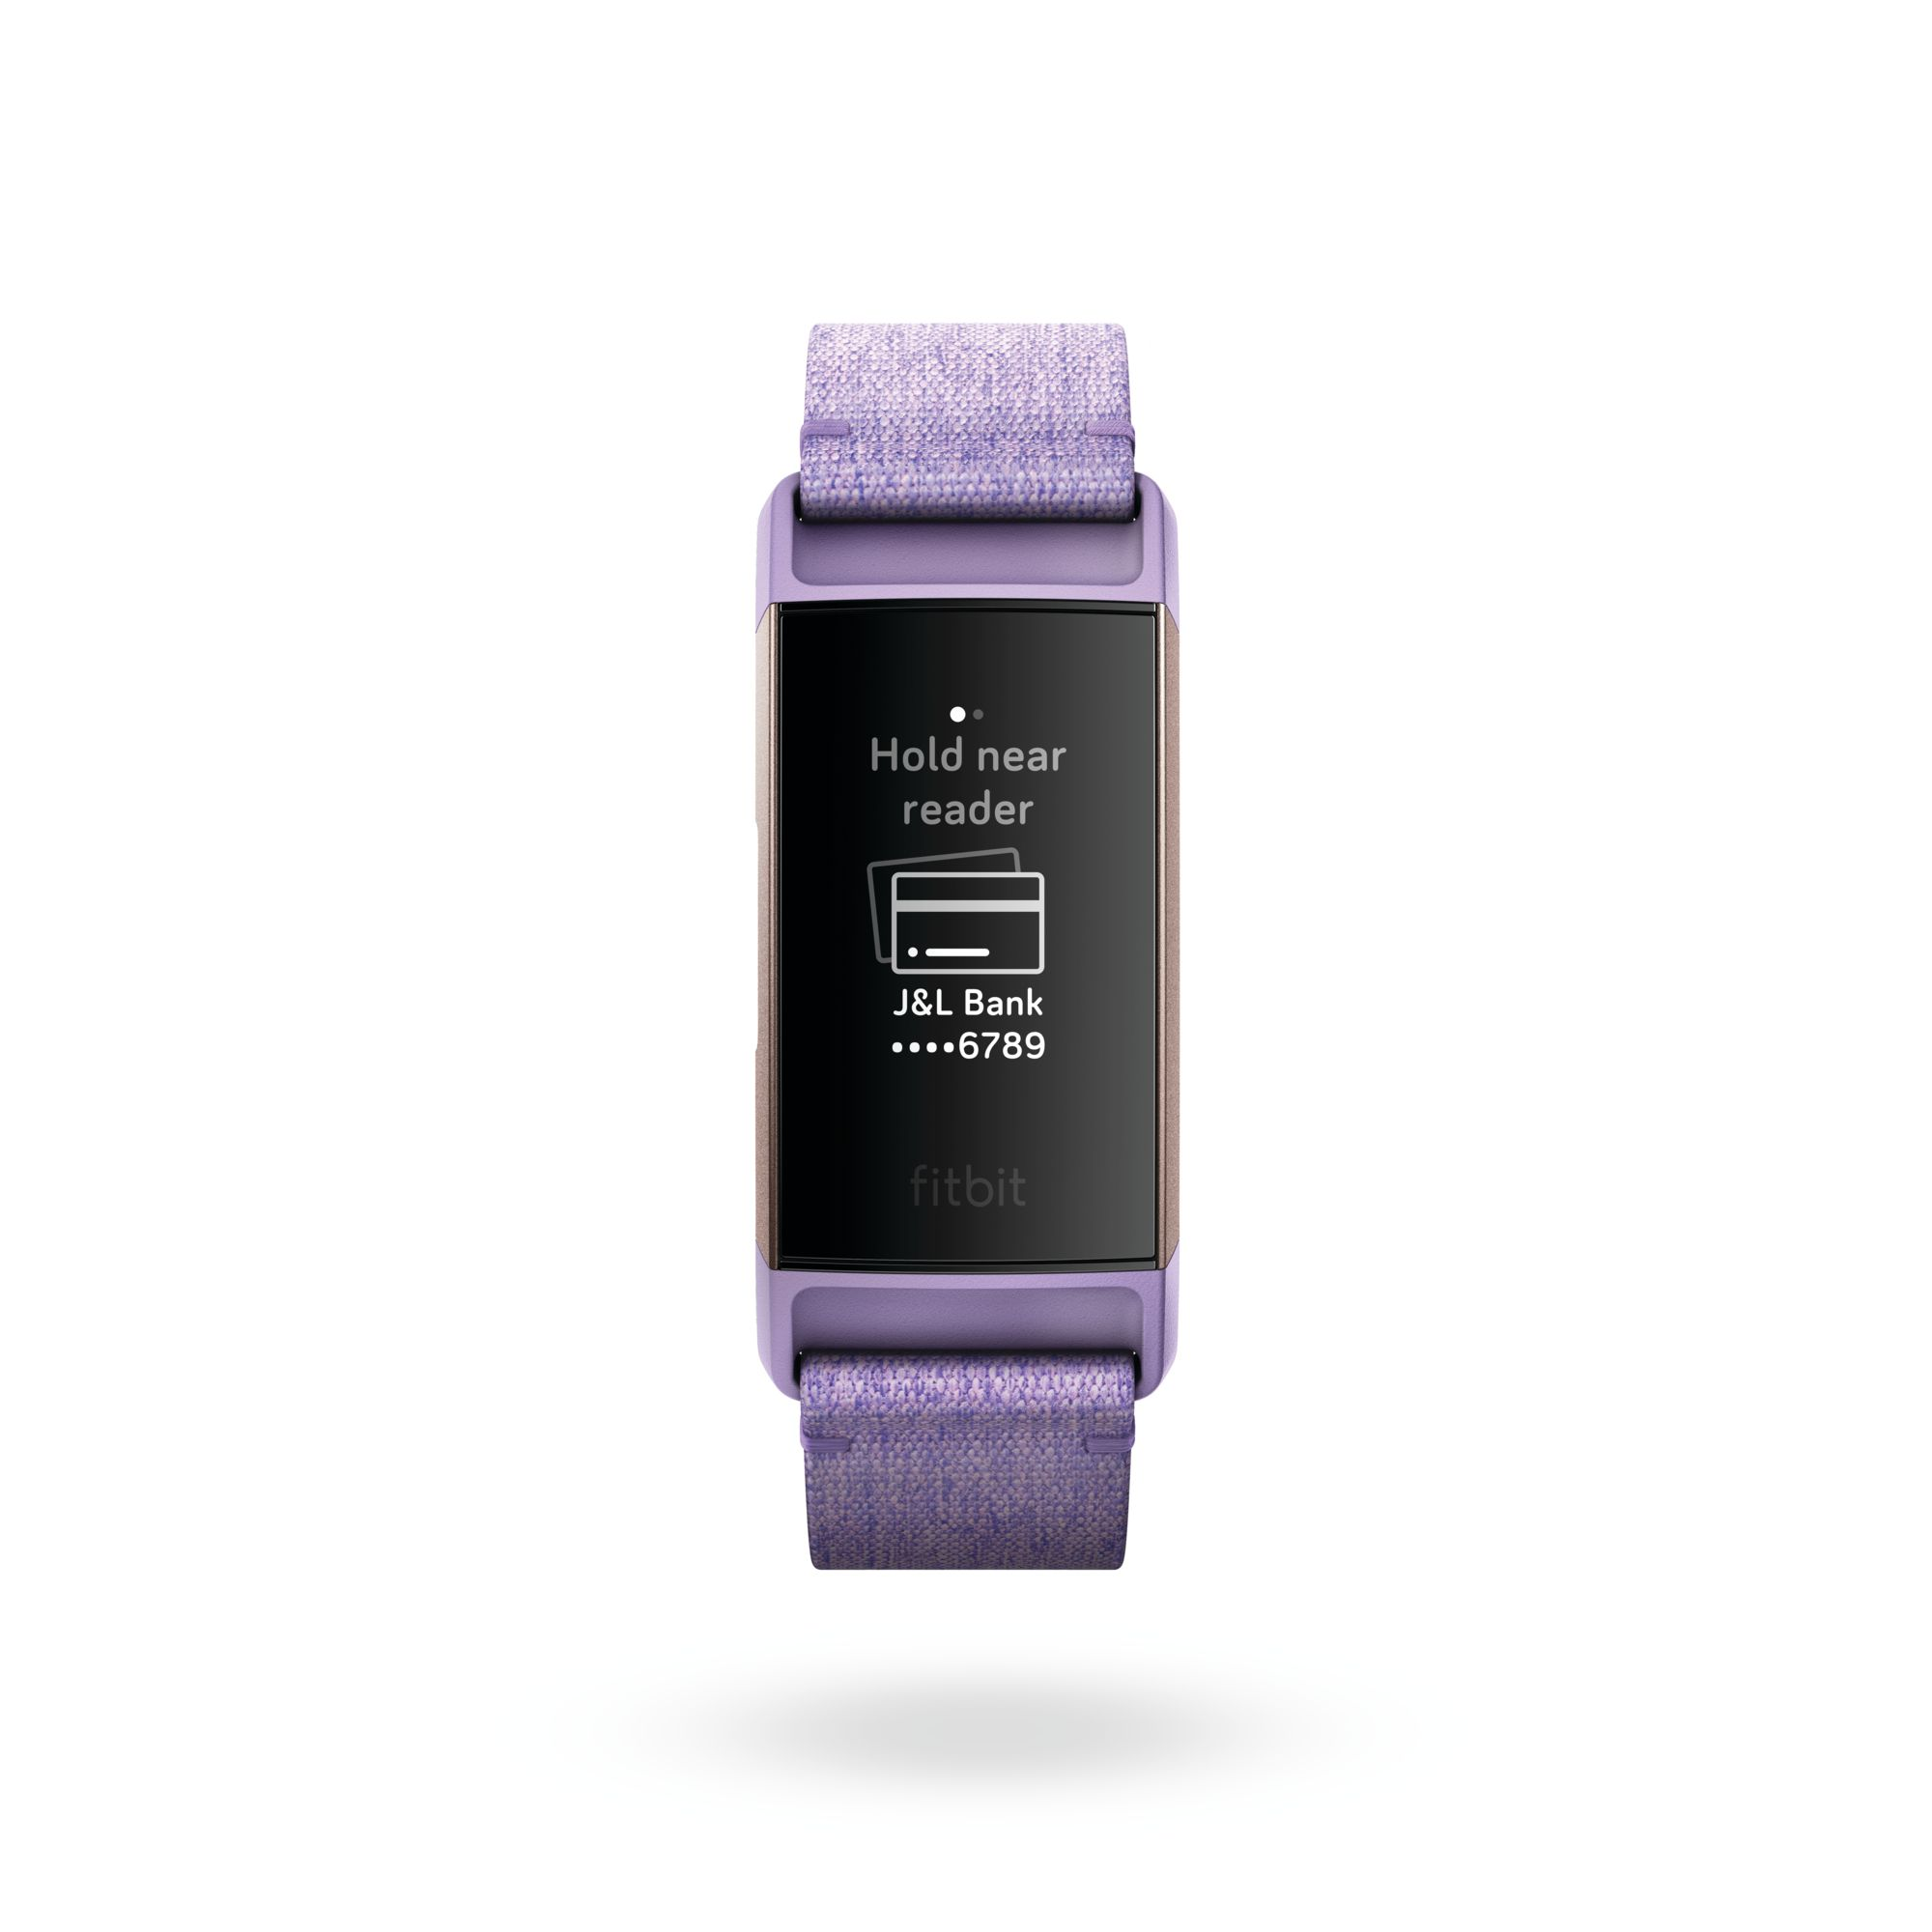 Fitbit Charge 3 fitness band with payment screen.